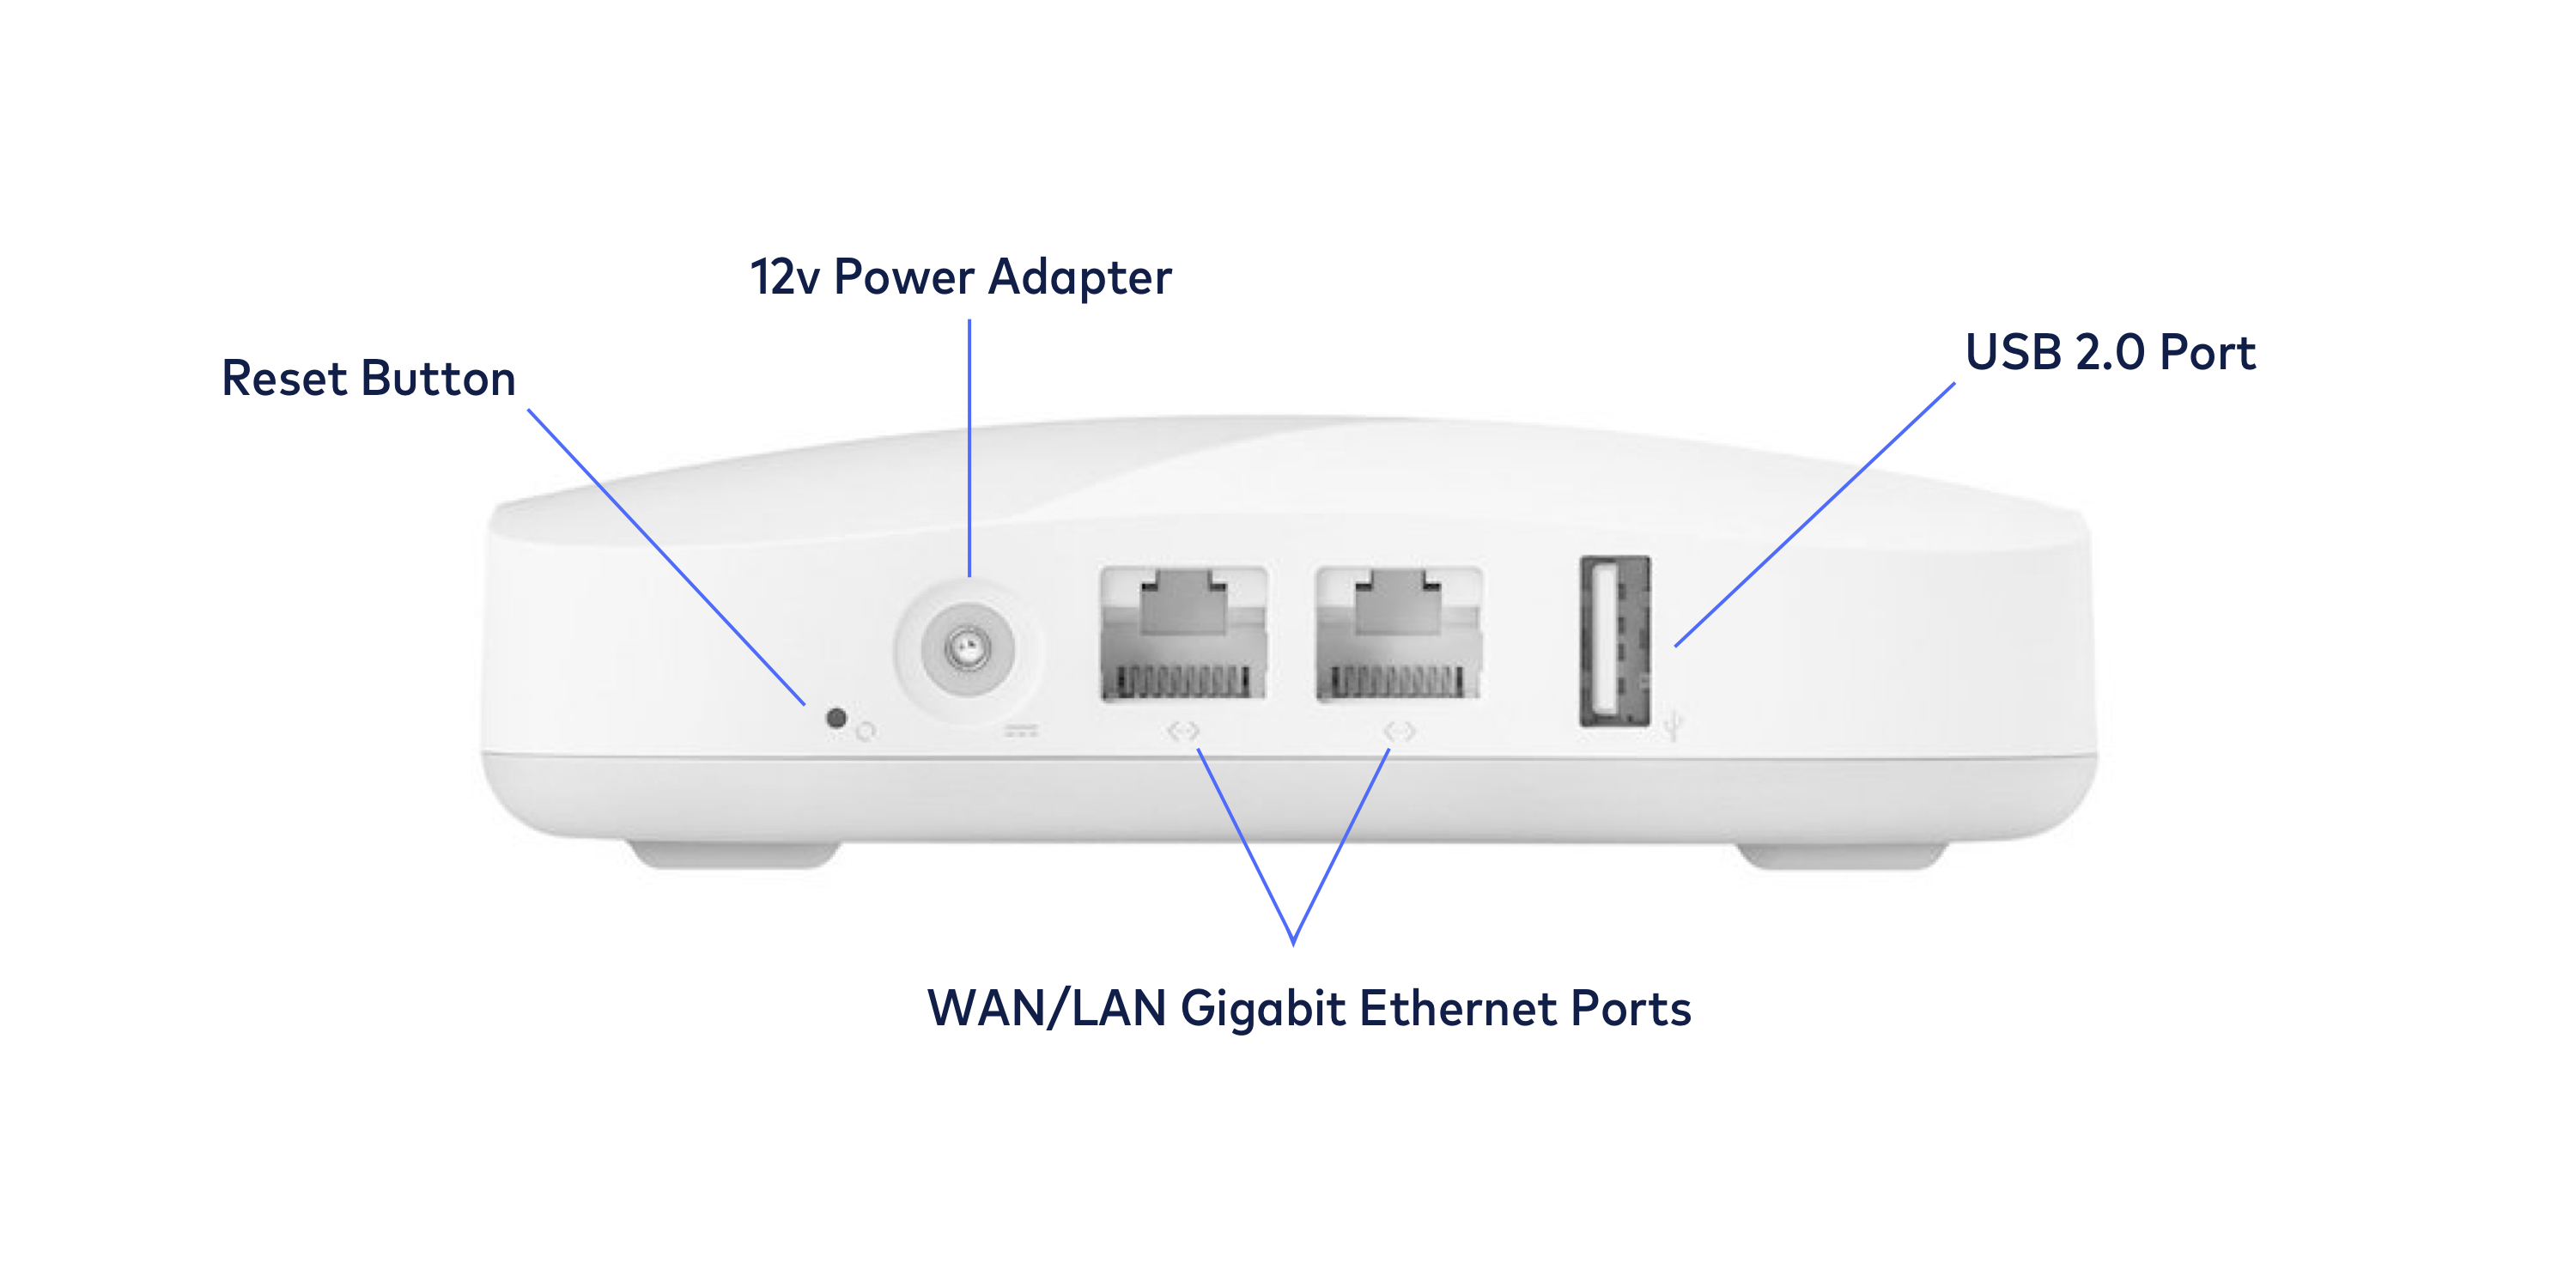 Physical Tour Of An Eero: What Are All The Ports For? – Eero Help Center - How To Hookup Eathernet To Usb Wiring Diagram